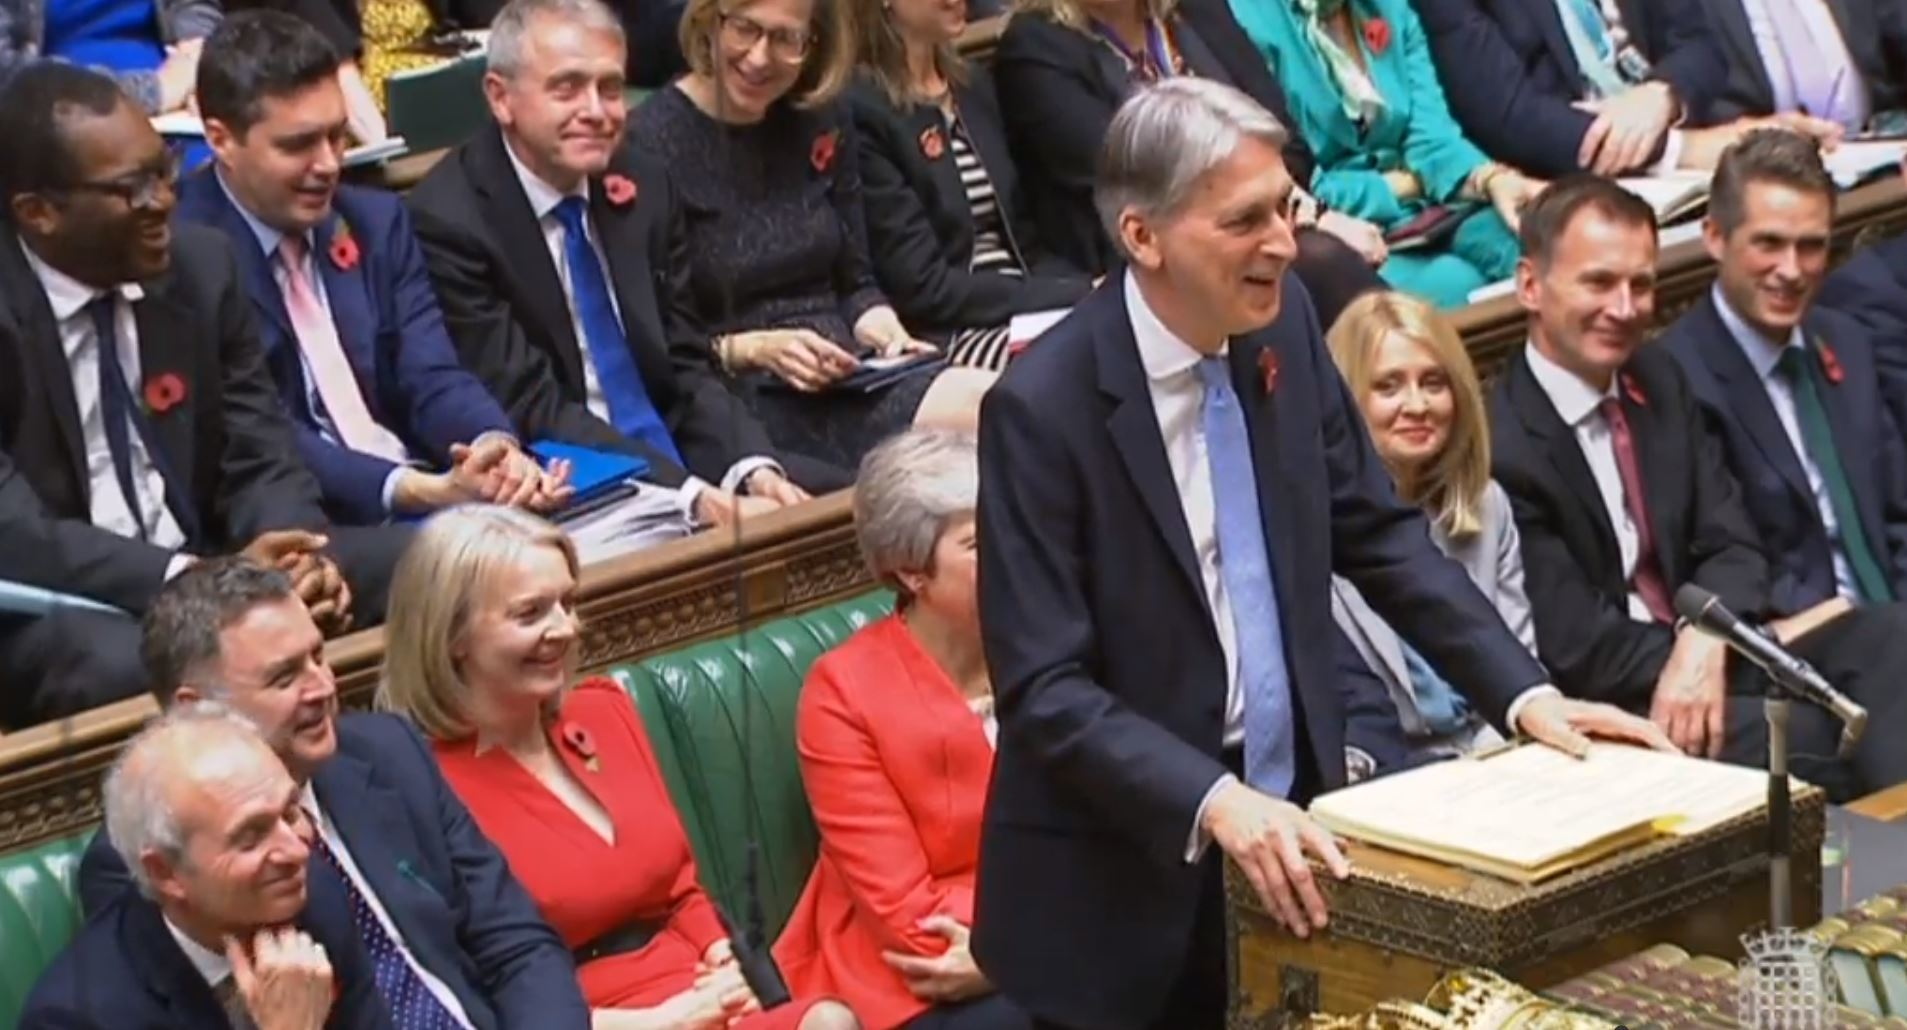 Chancellor of the Exchequer Philip Hammond making his Budget statement to MPs in the House of Commons, London. PRESS ASSOCIATION Photo. Picture date: Monday October 29, 2018. See PA story BUDGET Main. Photo credit should read: PA Wire.